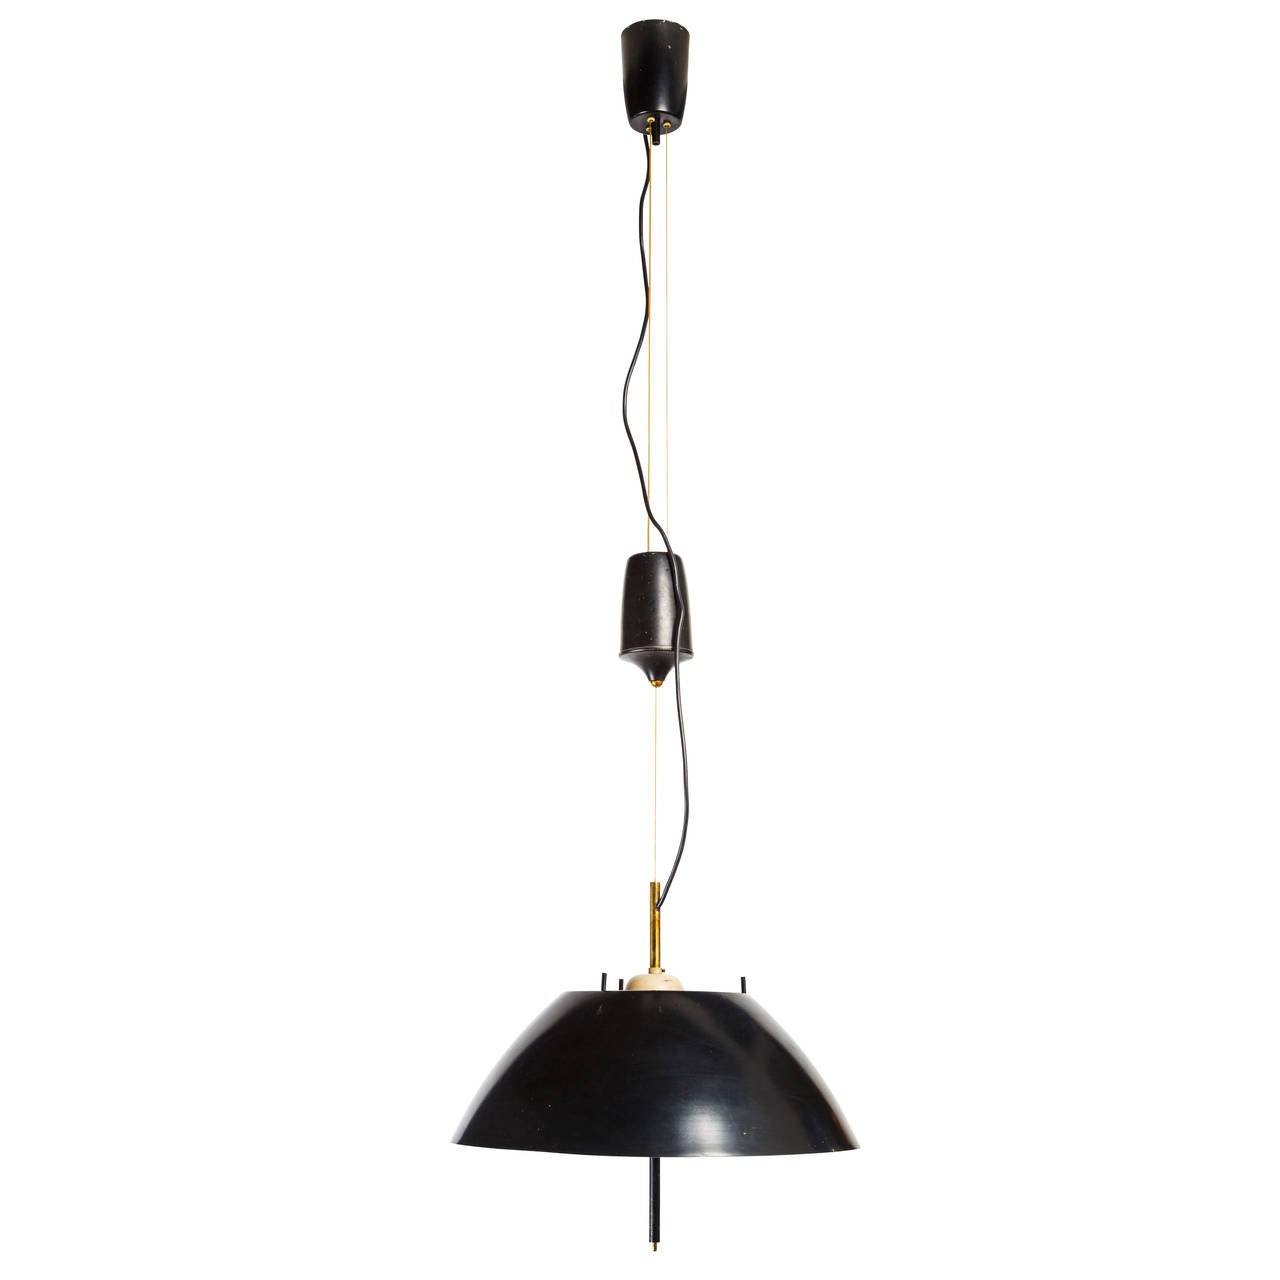 Rare Pendant By Oscar Torlasco For Lumi For Sale At 1stdibs